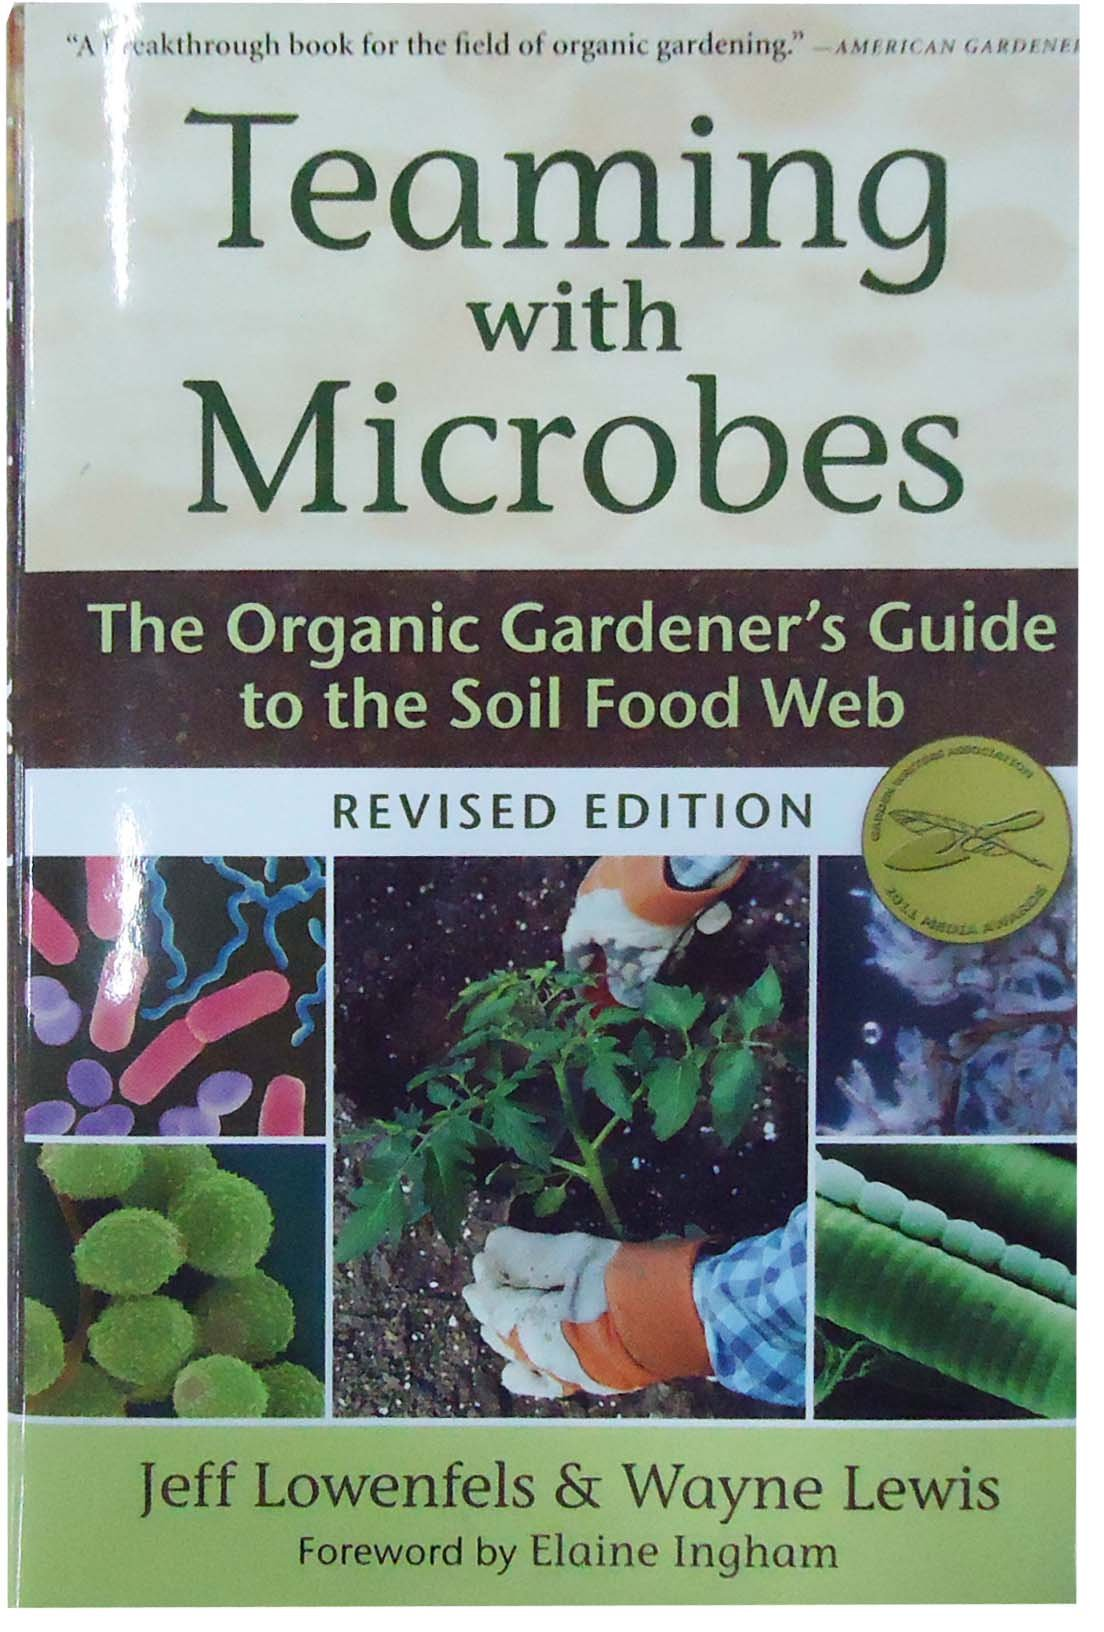 Exceptionnel Teaming With Microbes: The Organic Gardeneru0027s Guide To The Soil Food Web,  Revised Edition: Jeff Lowenfels, Wayne Lewis: 8601404667305: Amazon.com:  Books